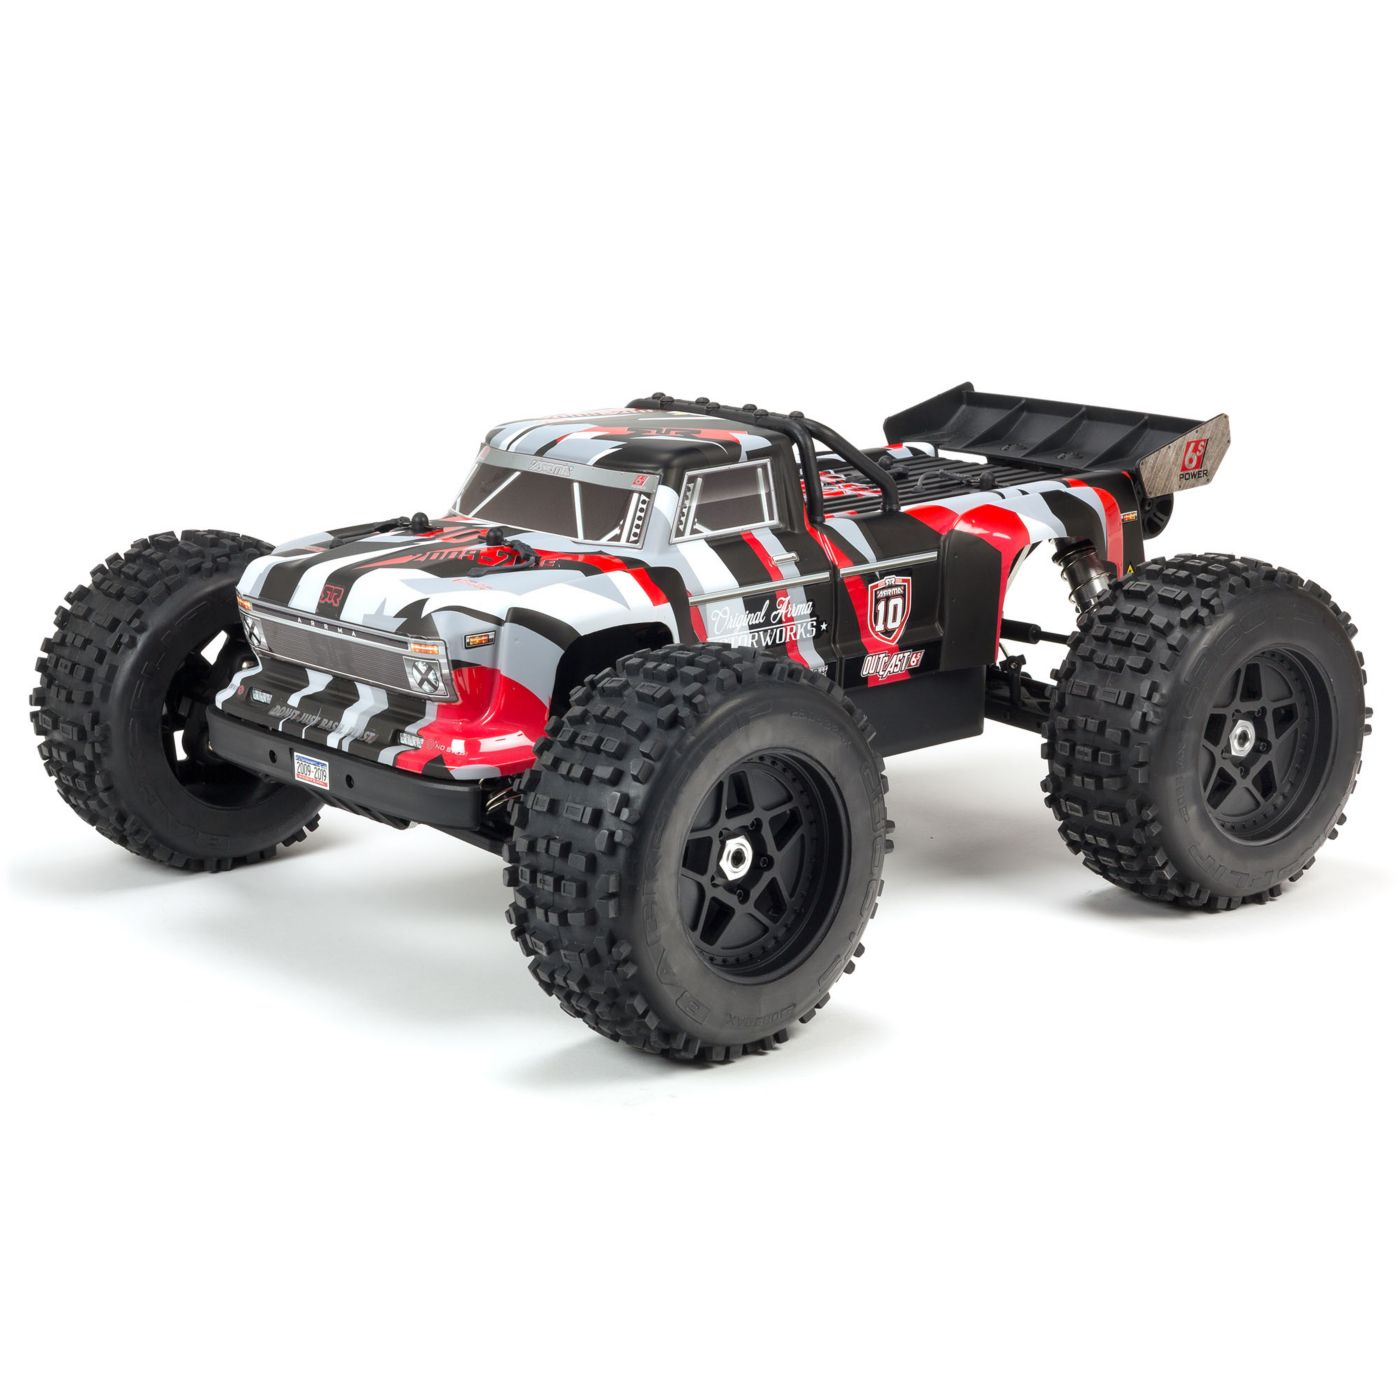 Celebrate 10 Years of ARRMA with the Outcast 6S 10th Anniversary Edition